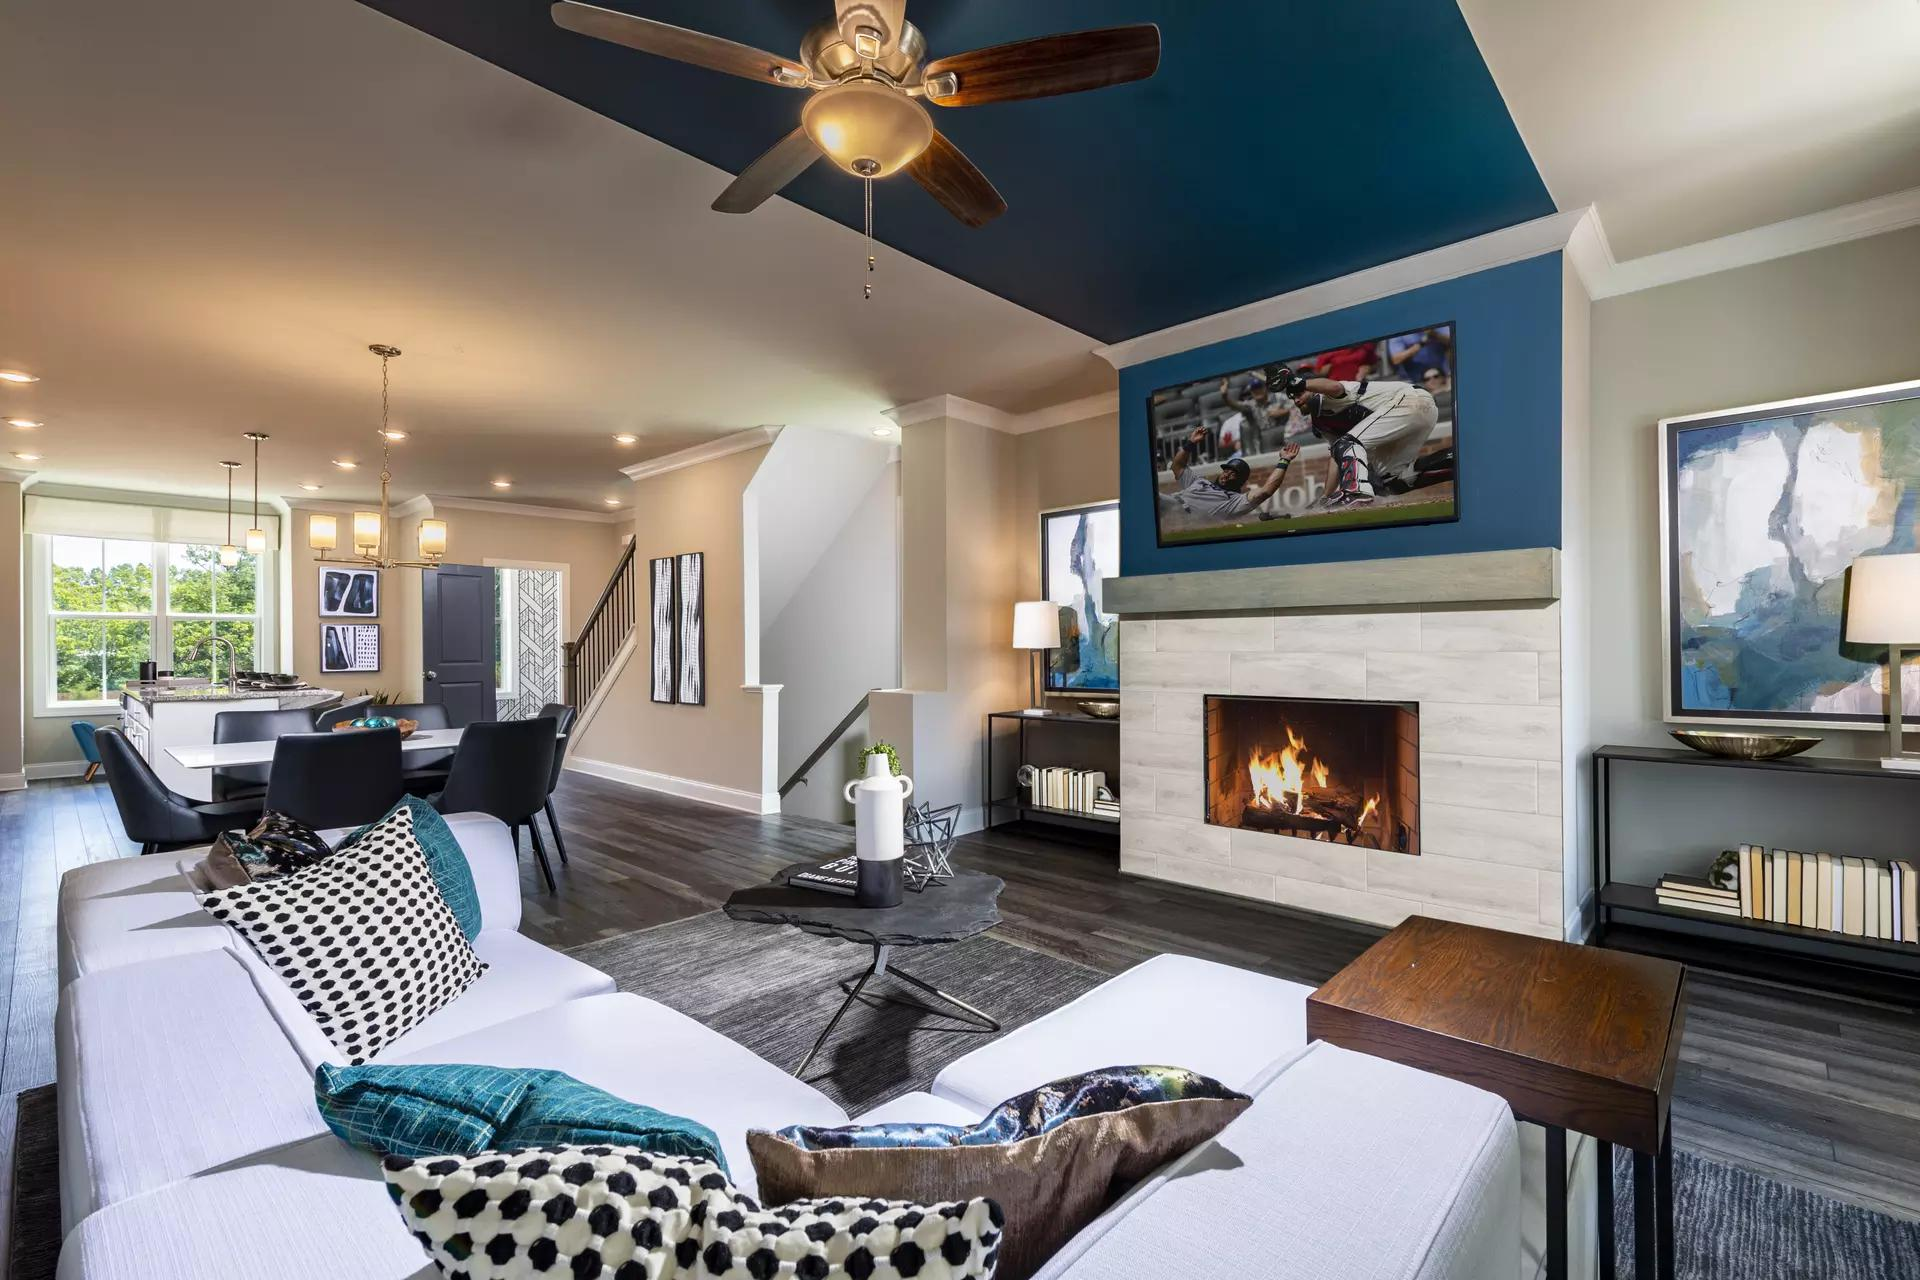 Find the Spice of Life in Glendale Rowes